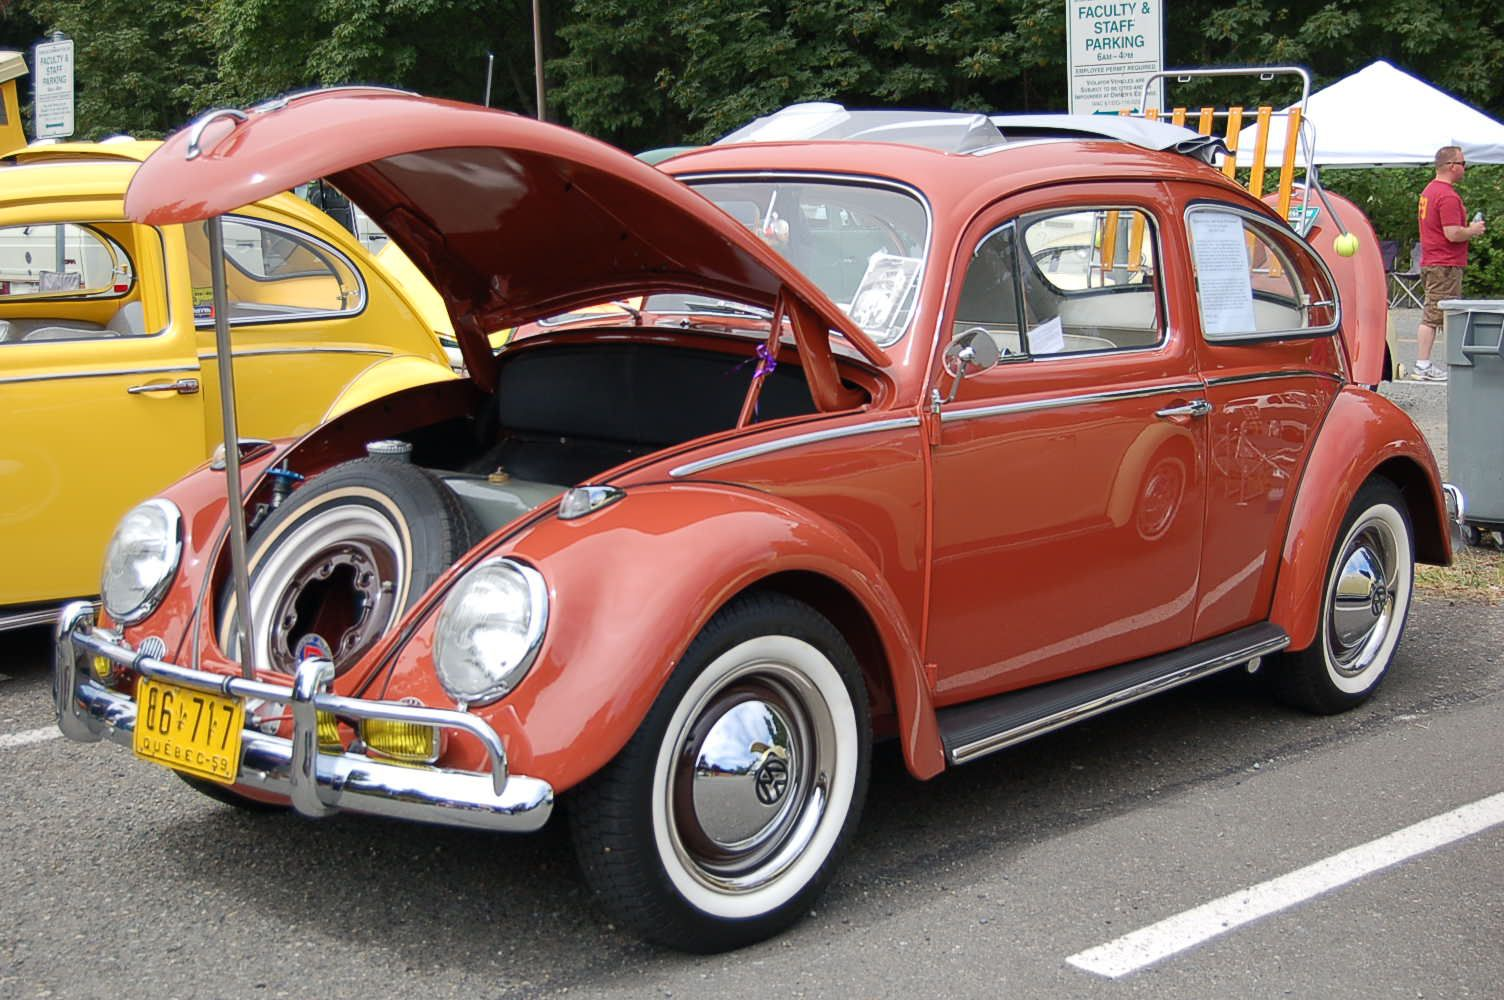 Volkswagen Bug painted stock Indian Red L451 (originally